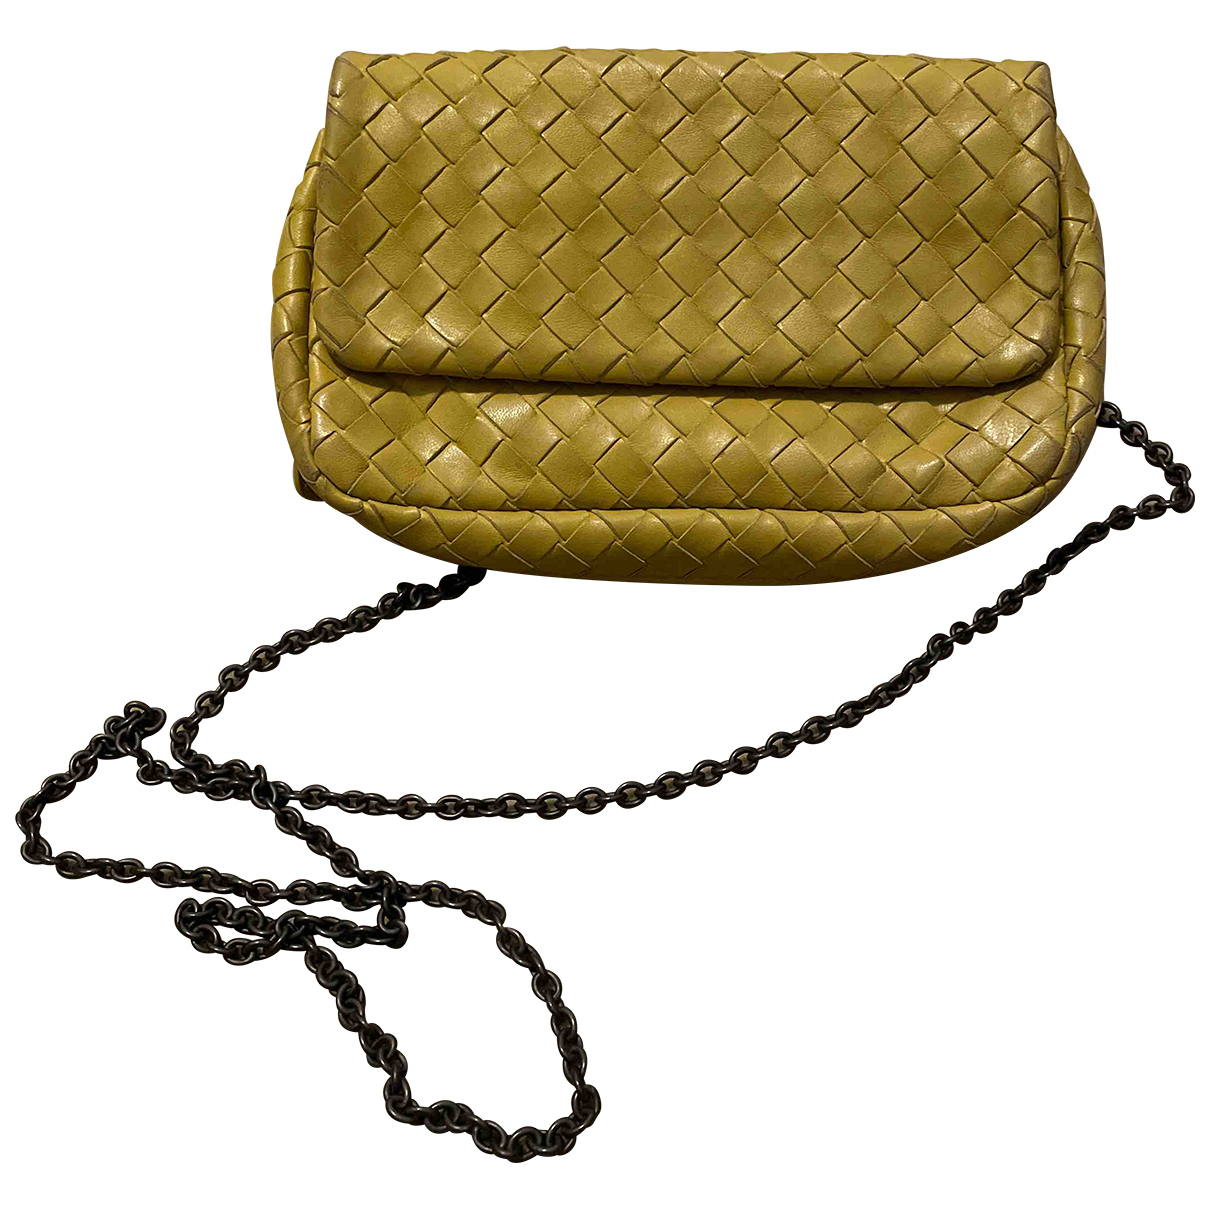 Bottega Veneta Olimpia Yellow Leather handbag for Women N